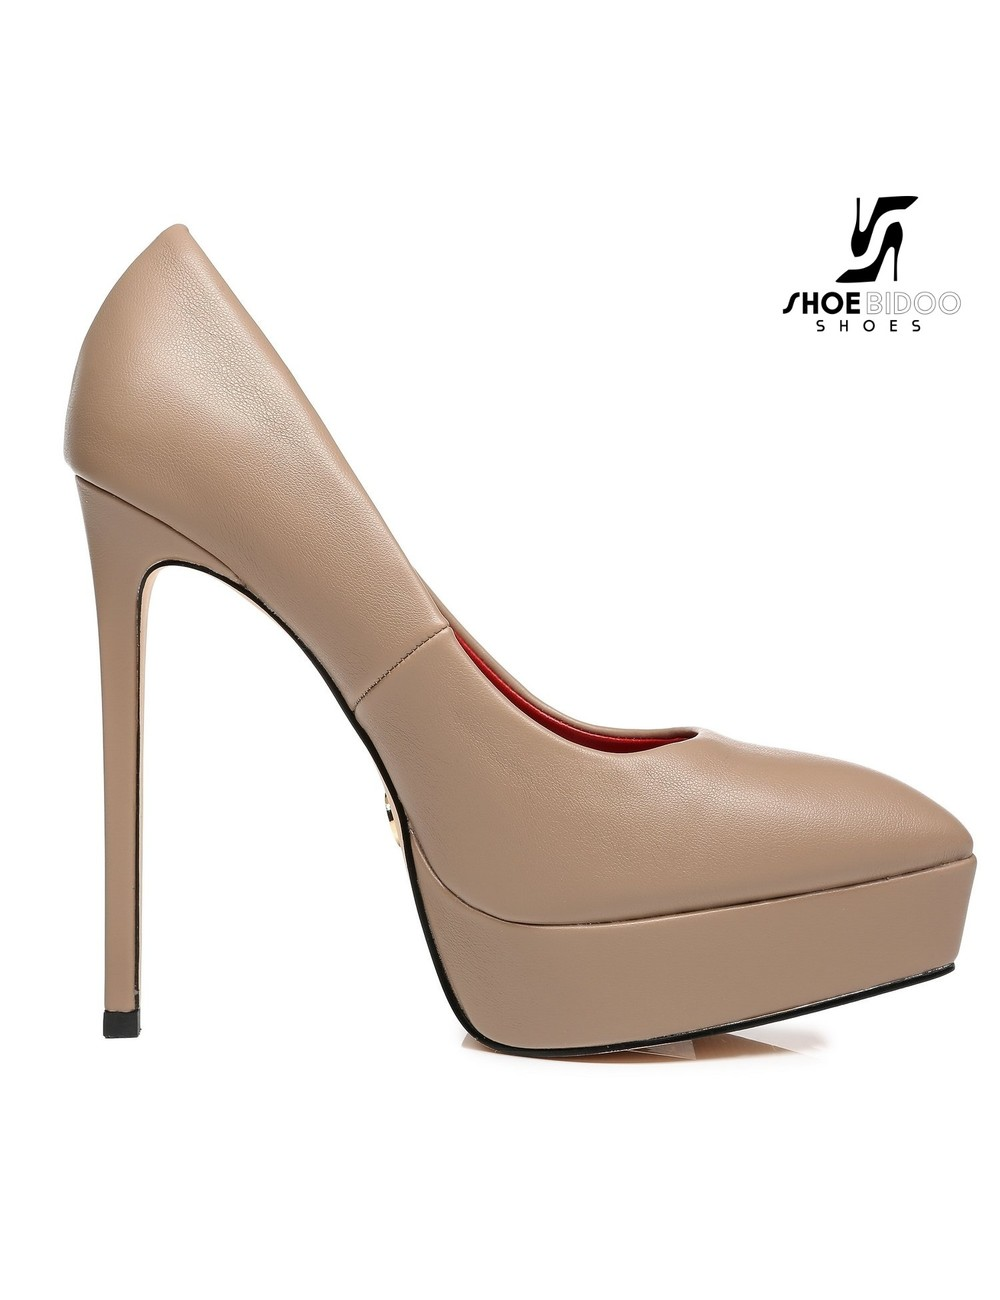 Giaro Giaro Platform pumps SCANT in Taupe with red lining